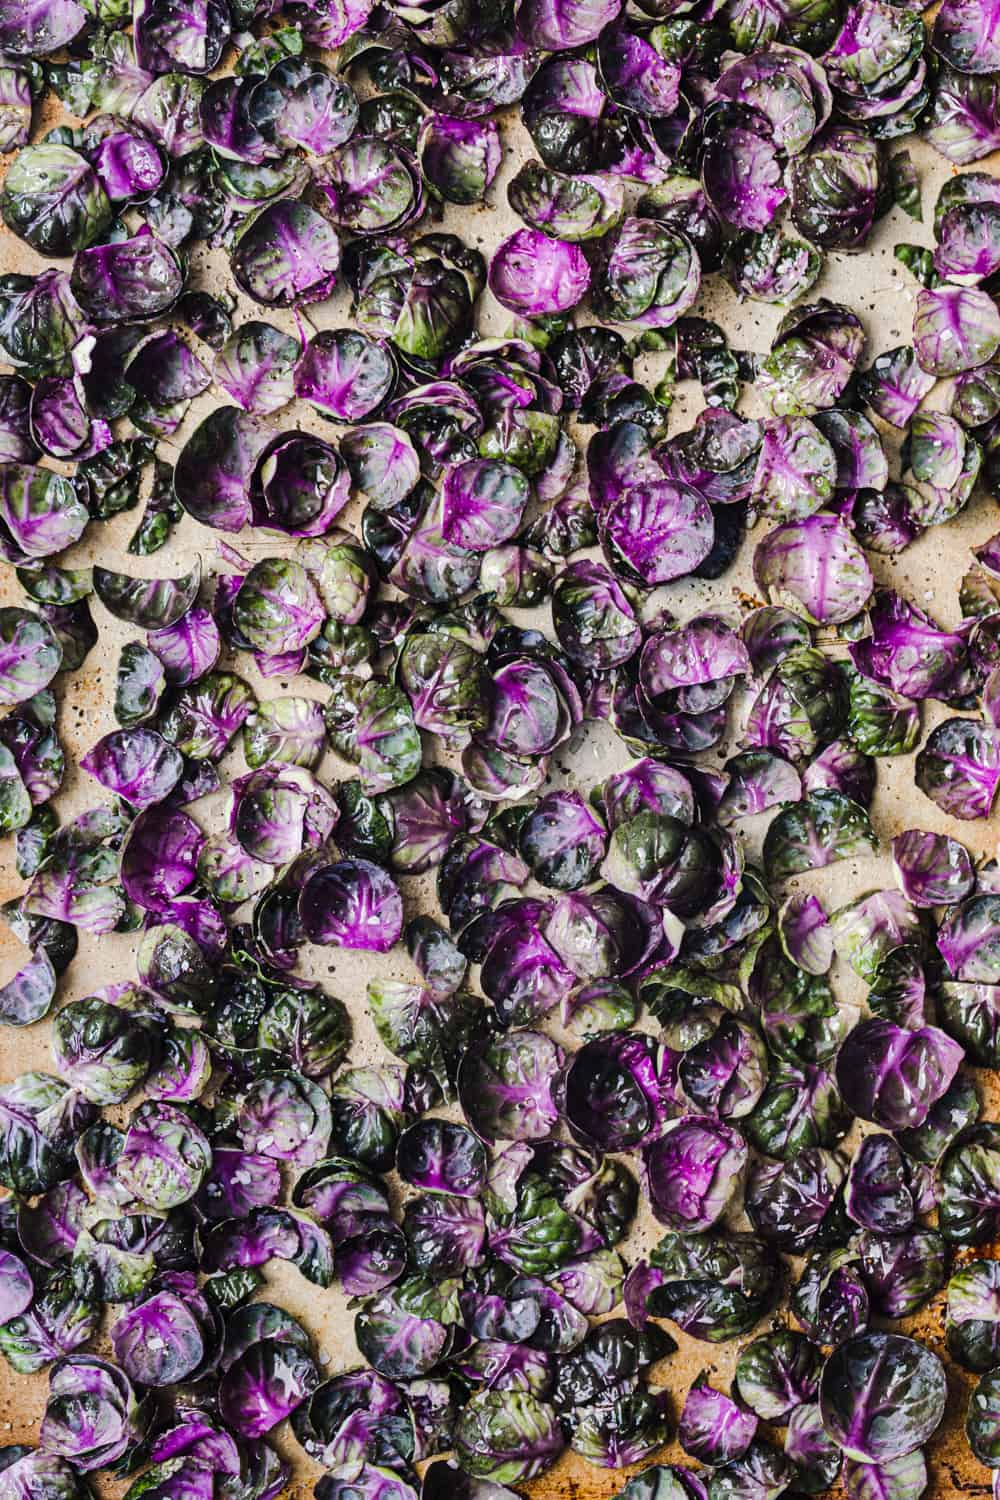 Loose purple Brussels sprout leaves tossed with olive oil, salt and pepper; on a baking sheet + overhead shot.